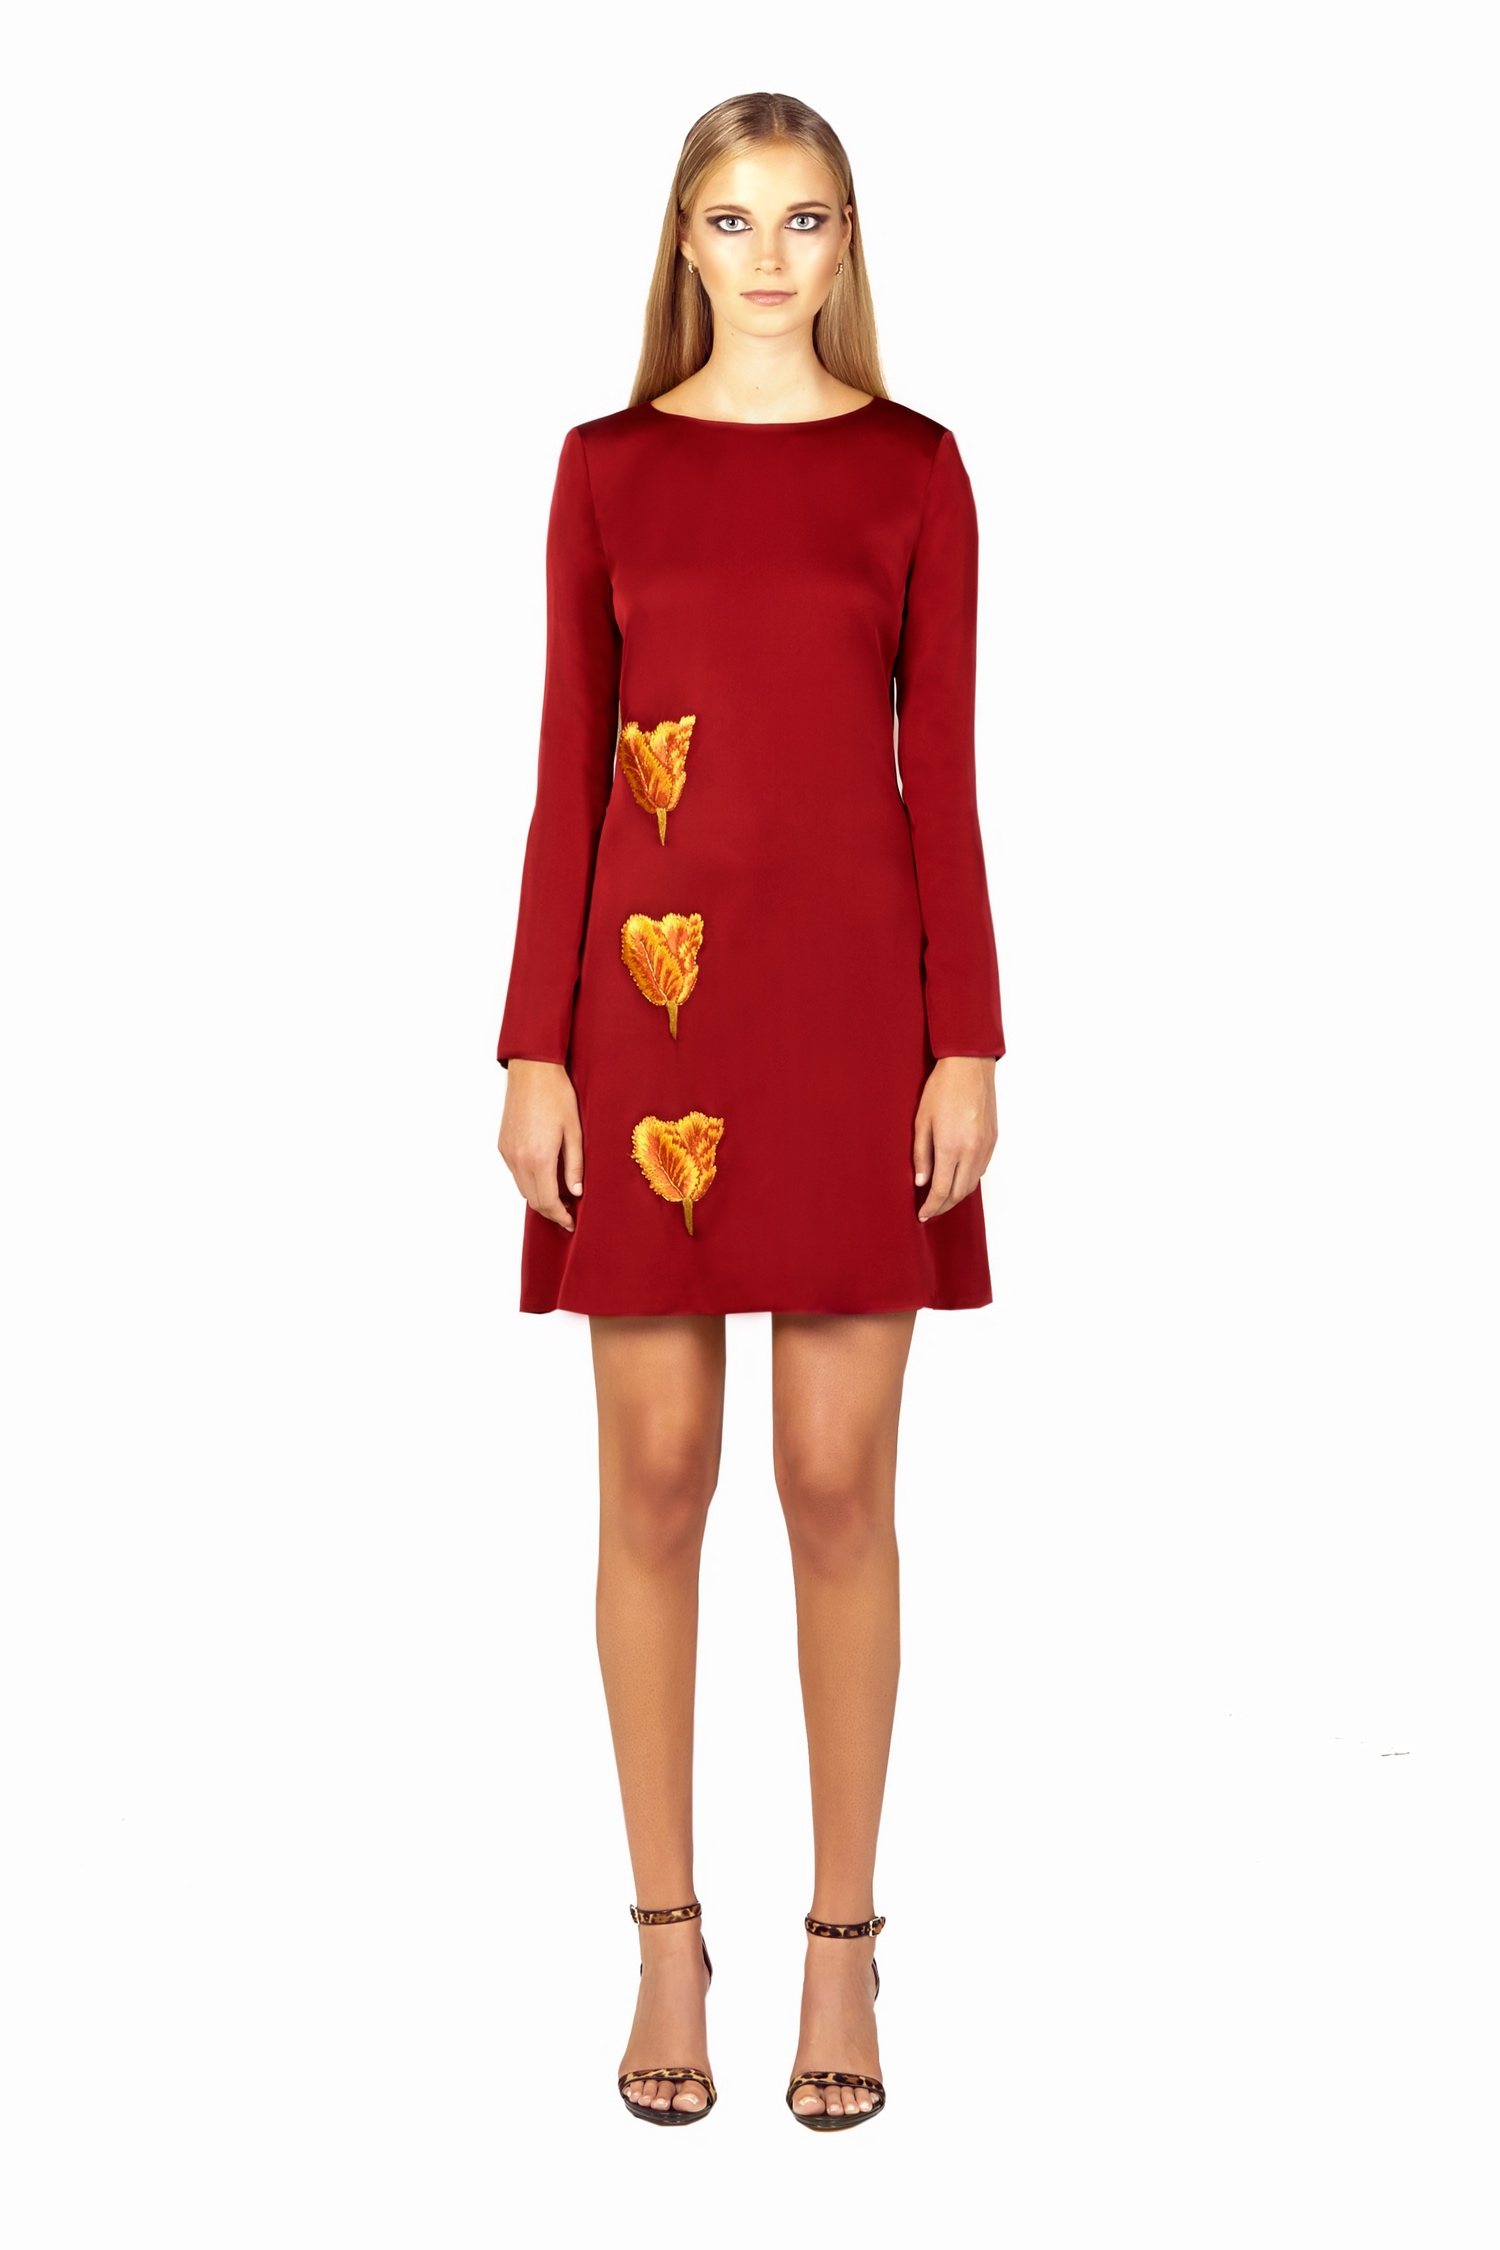 Tulips_Embroidered_Dress_Front.jpg